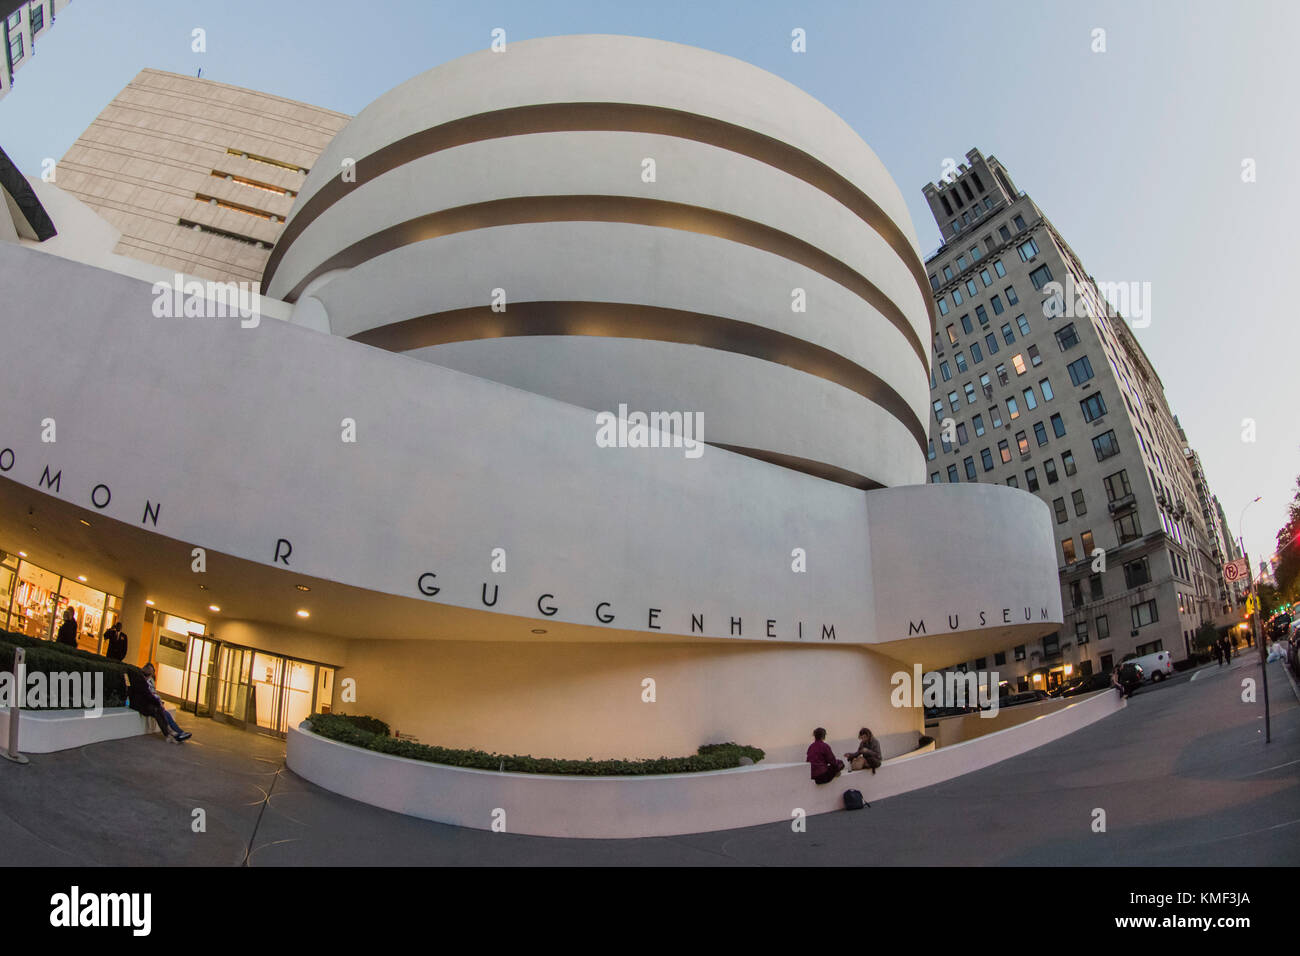 Solomon R Guggenheim Musuem, NYC Stock Photo